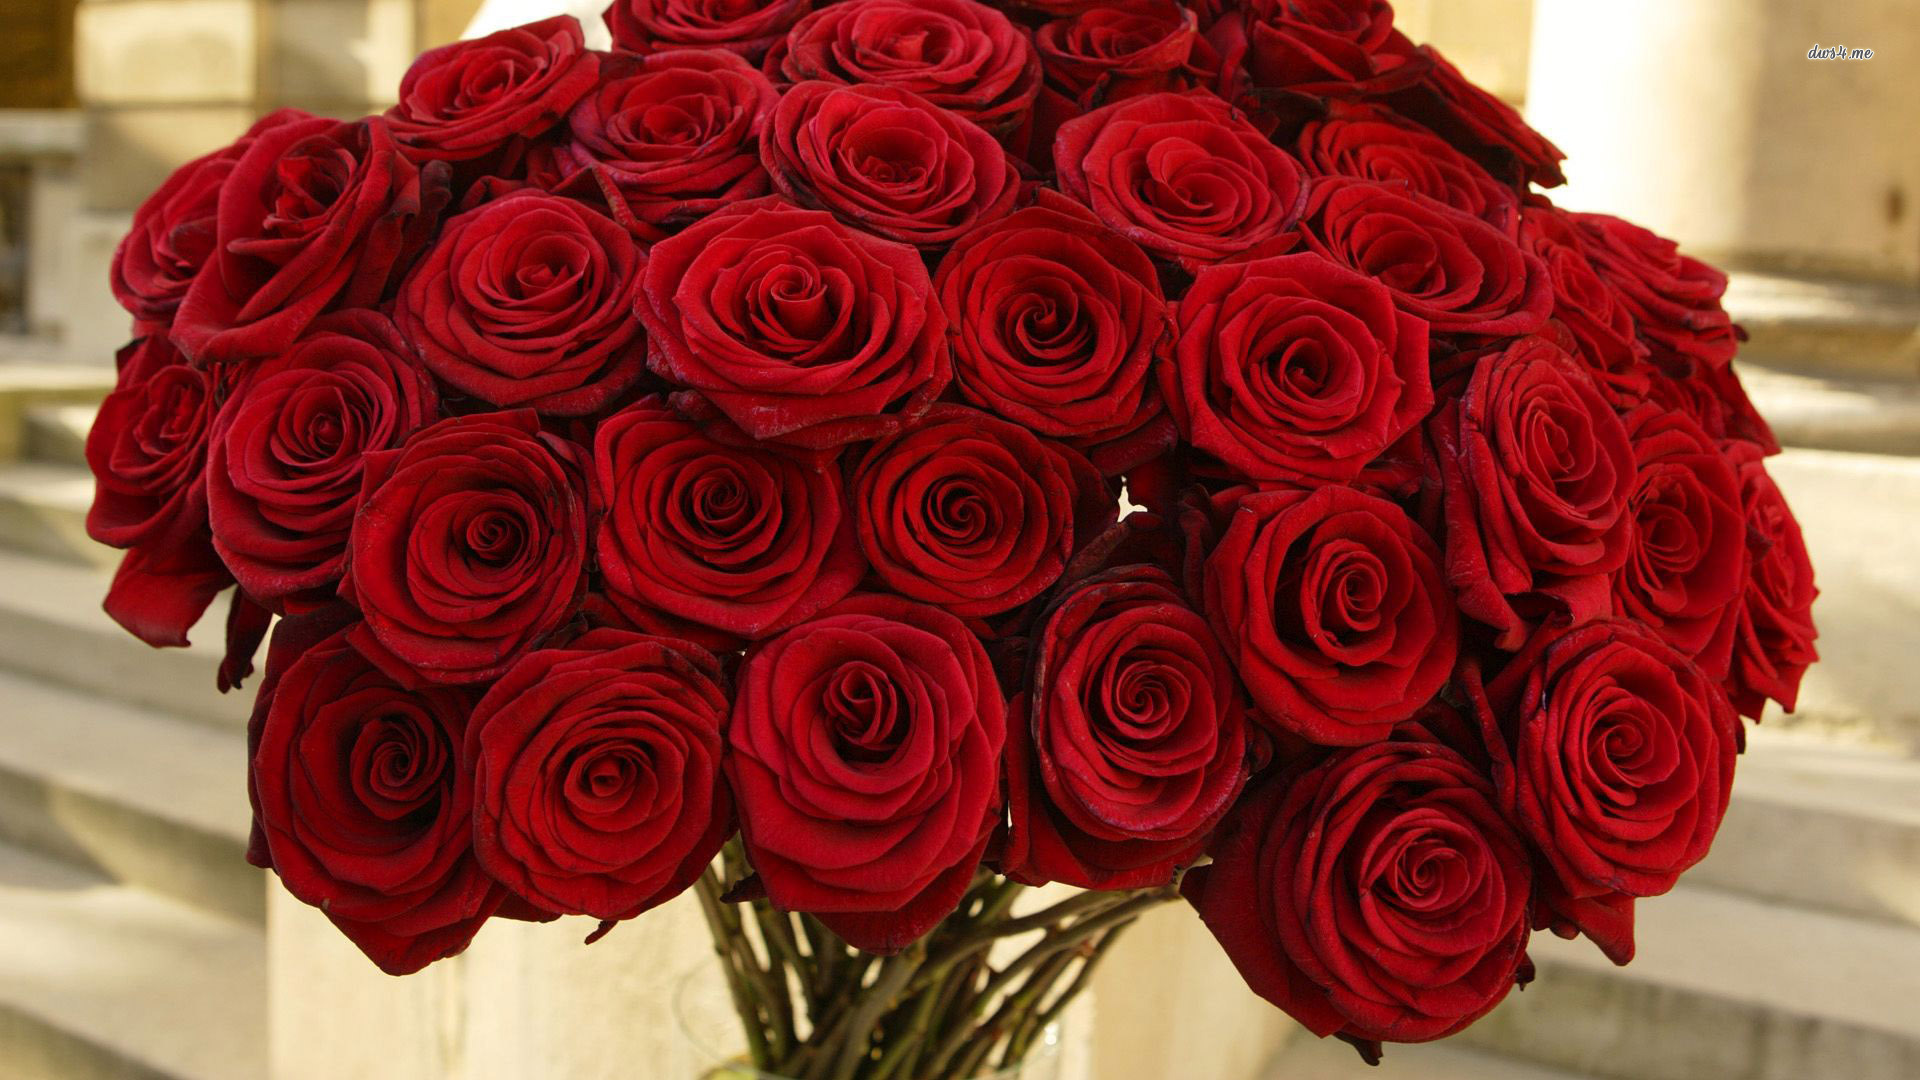 Red Roses Wallpapers HD A39 creative